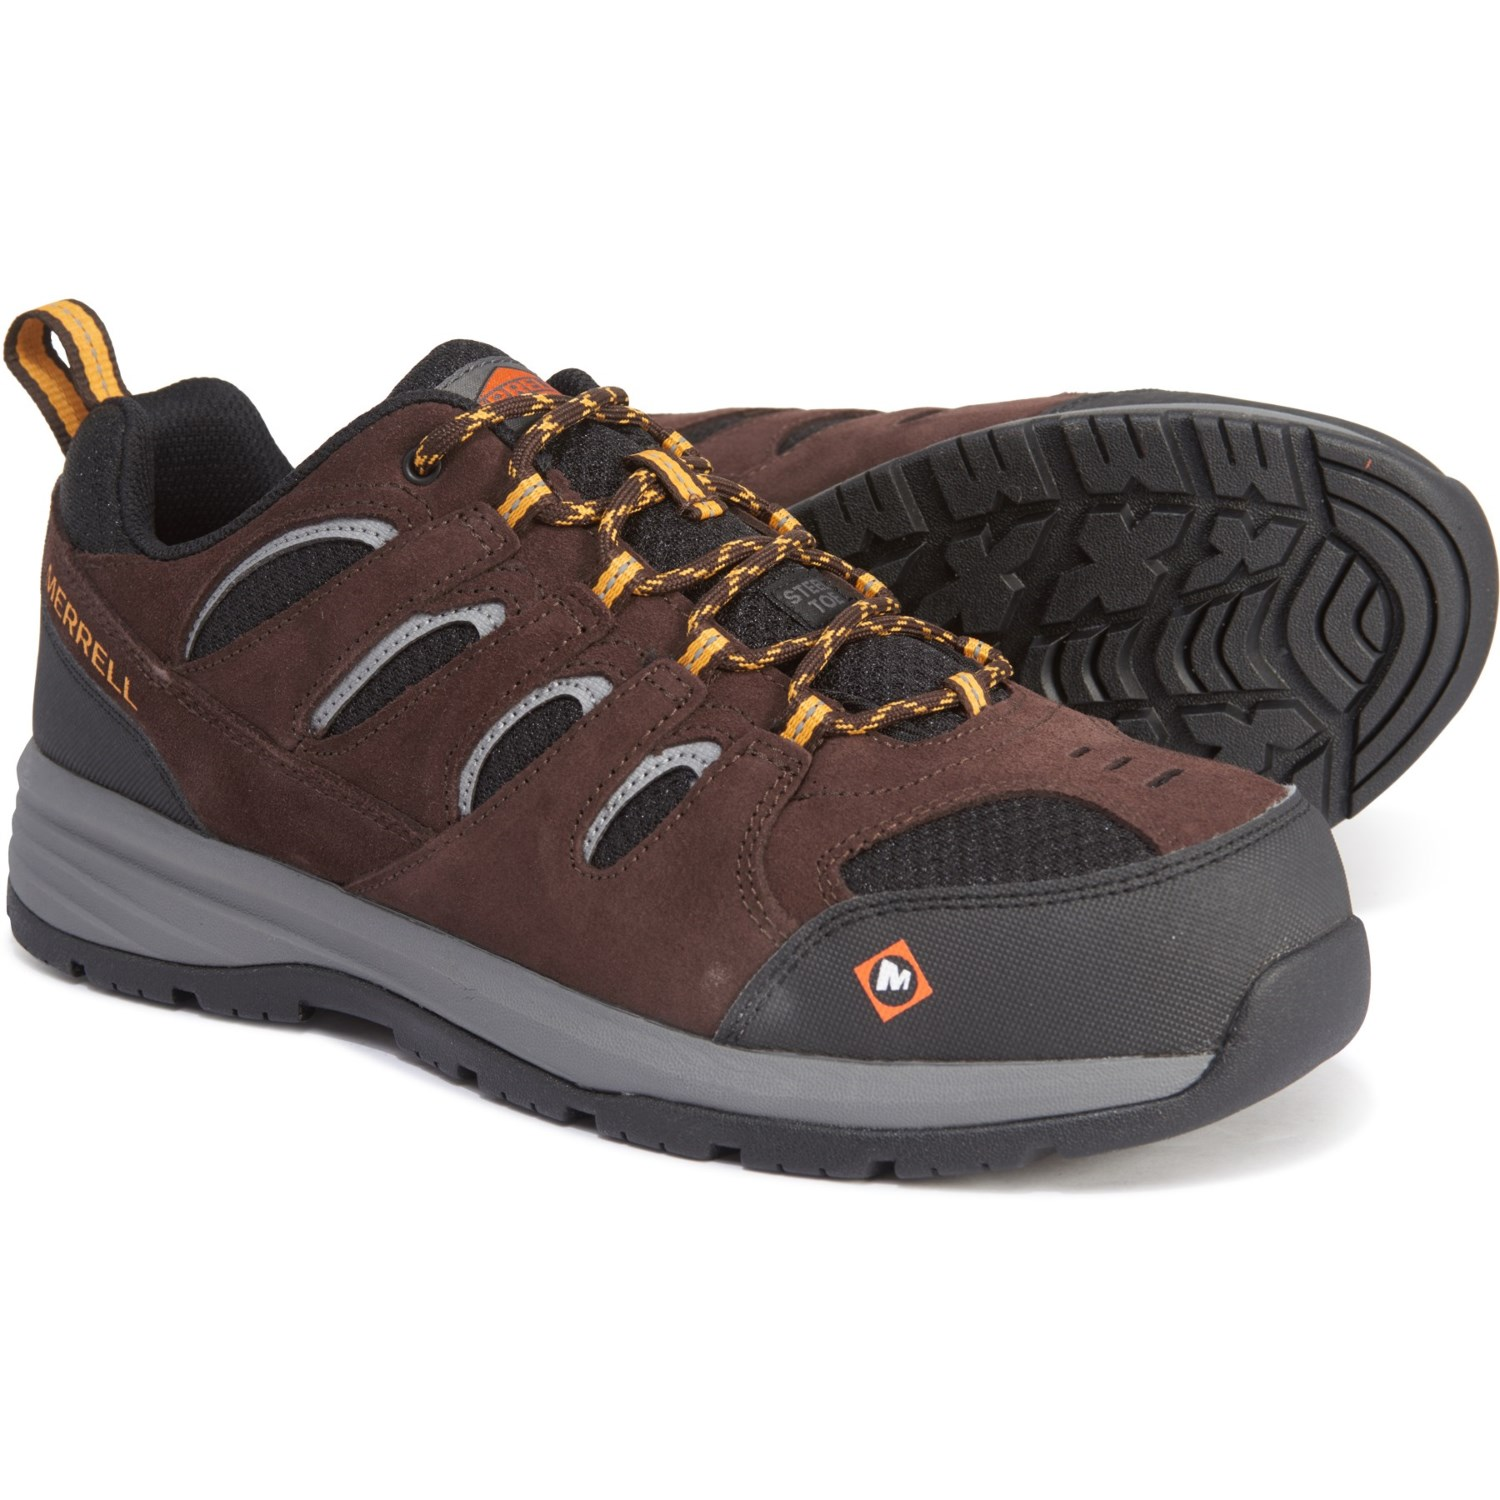 9bc75d2e Merrell Windoc Work Shoes (For Men) - Save 44%